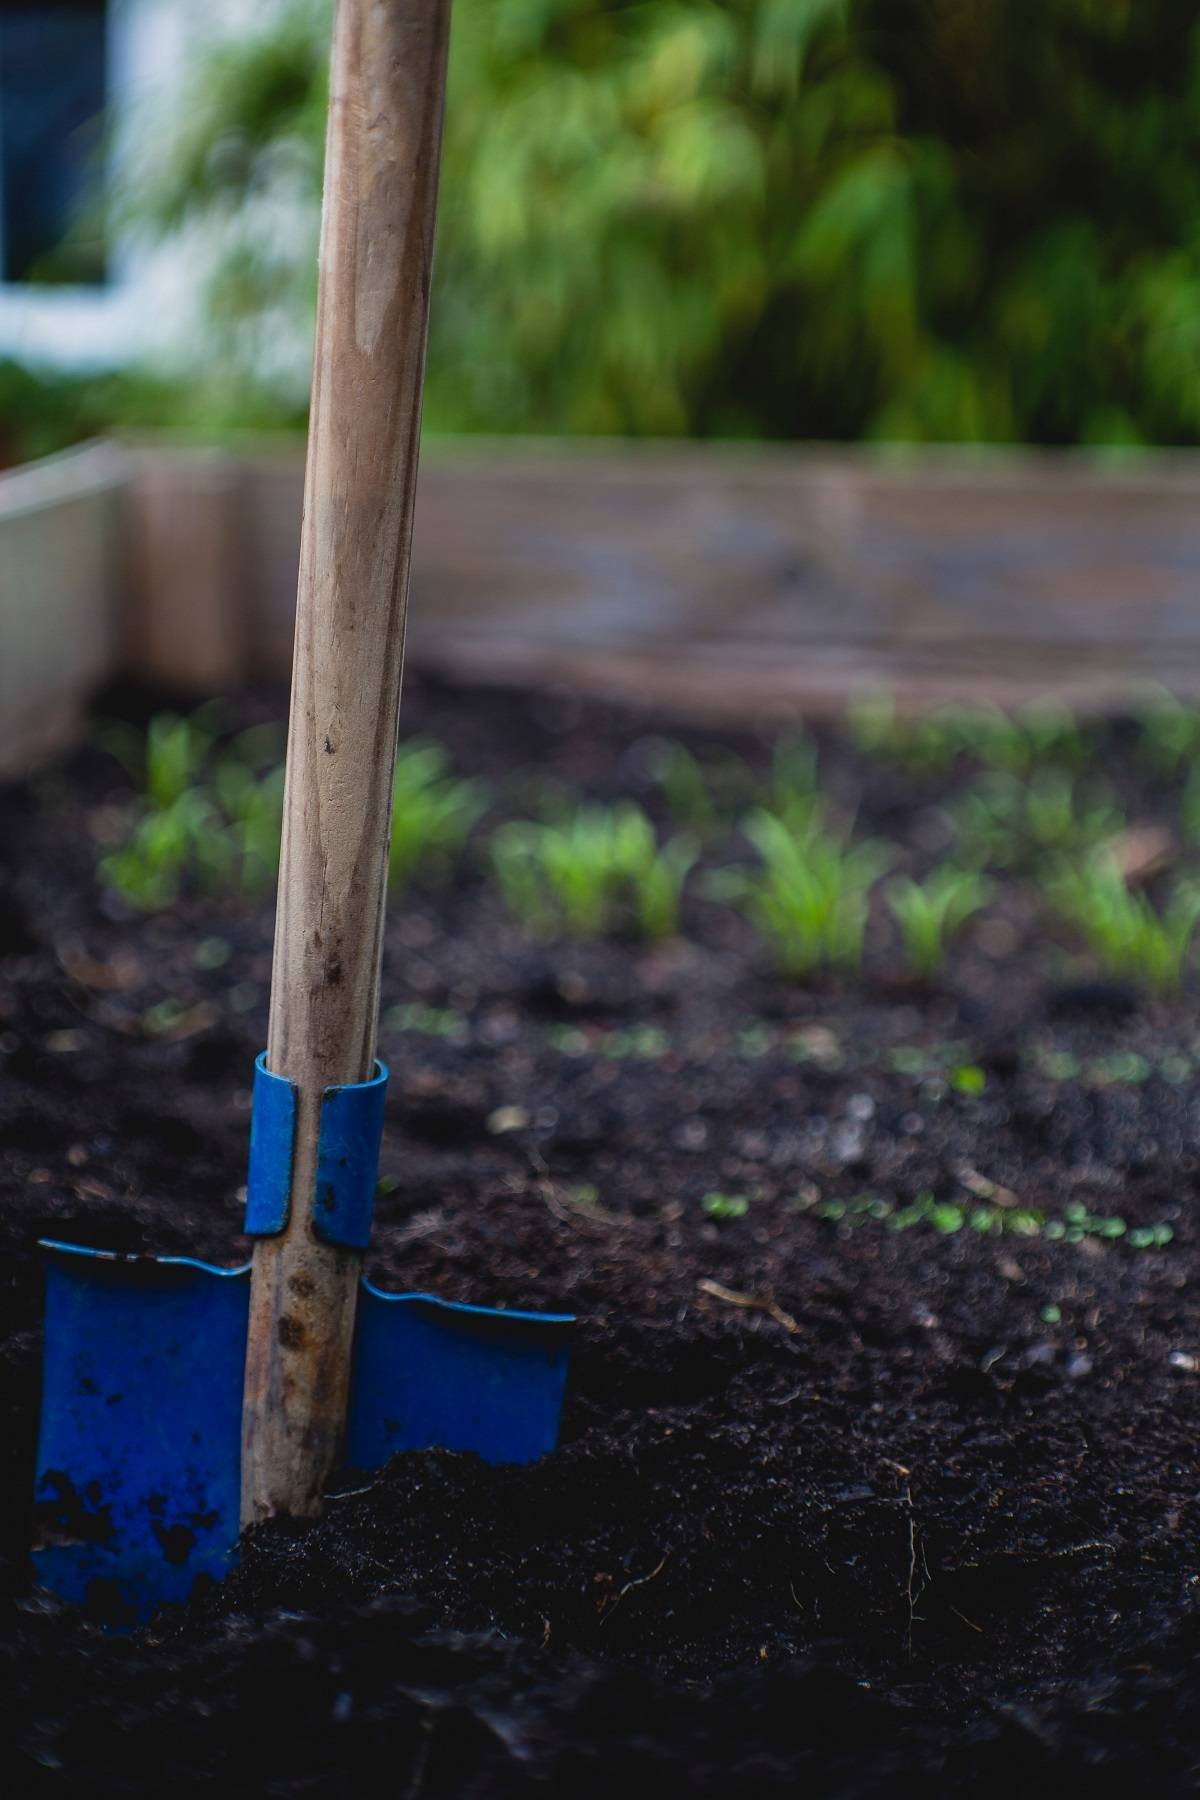 A spade in the soil of a raised vegetable bed